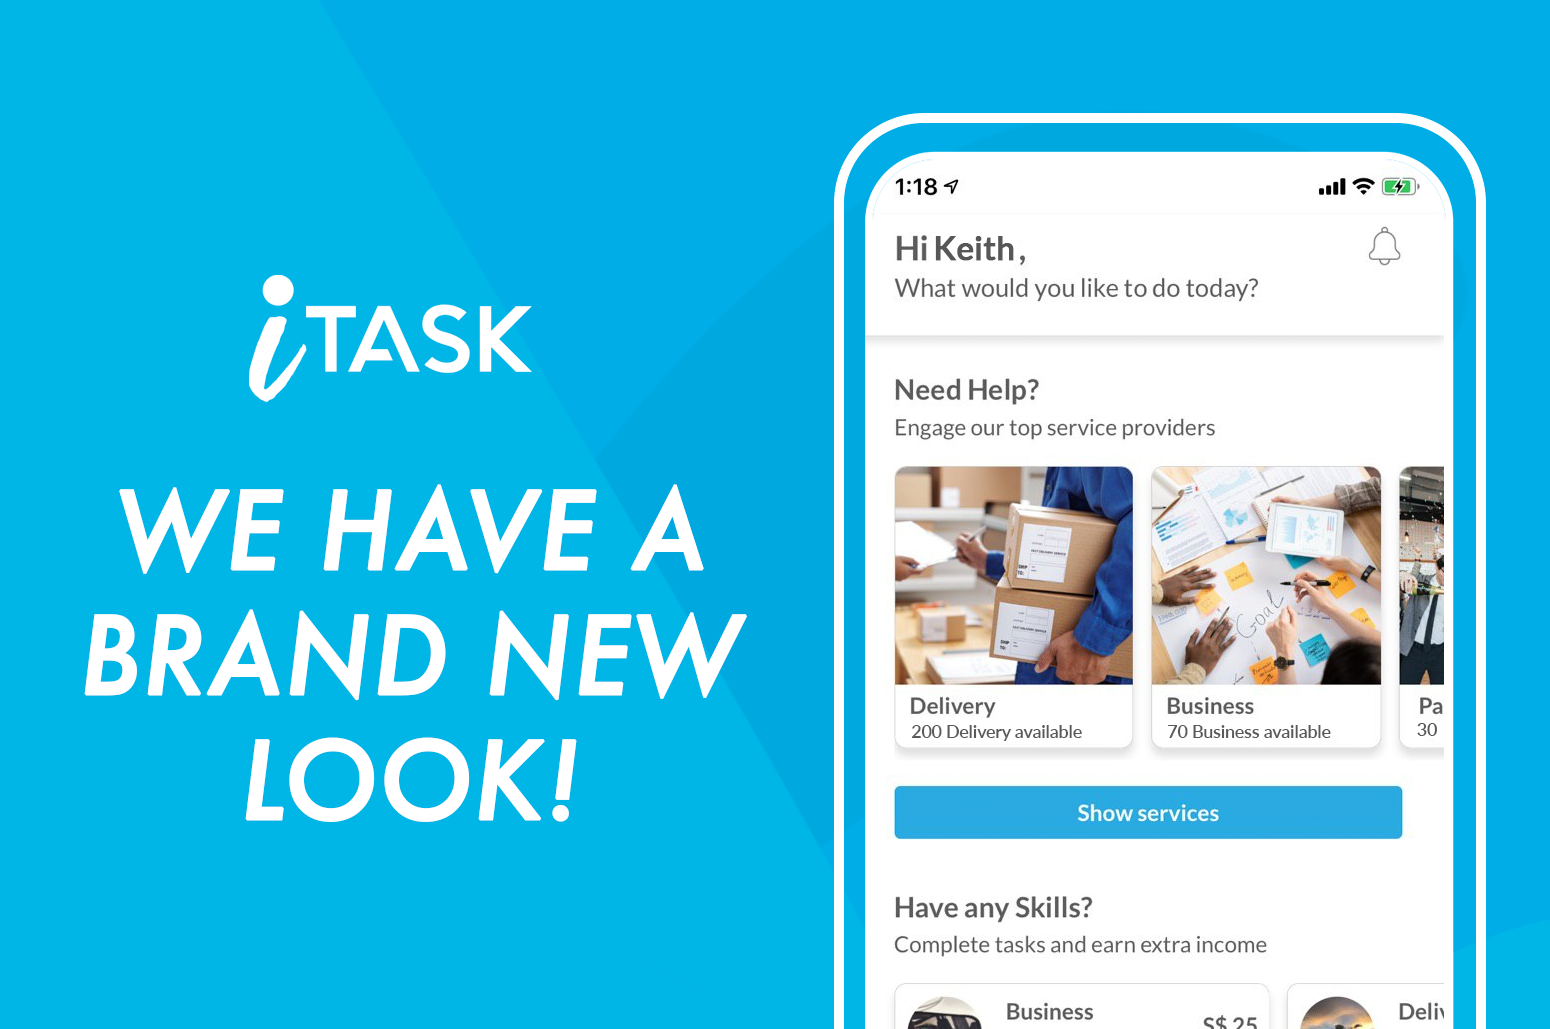 iTask gets a brand new look!